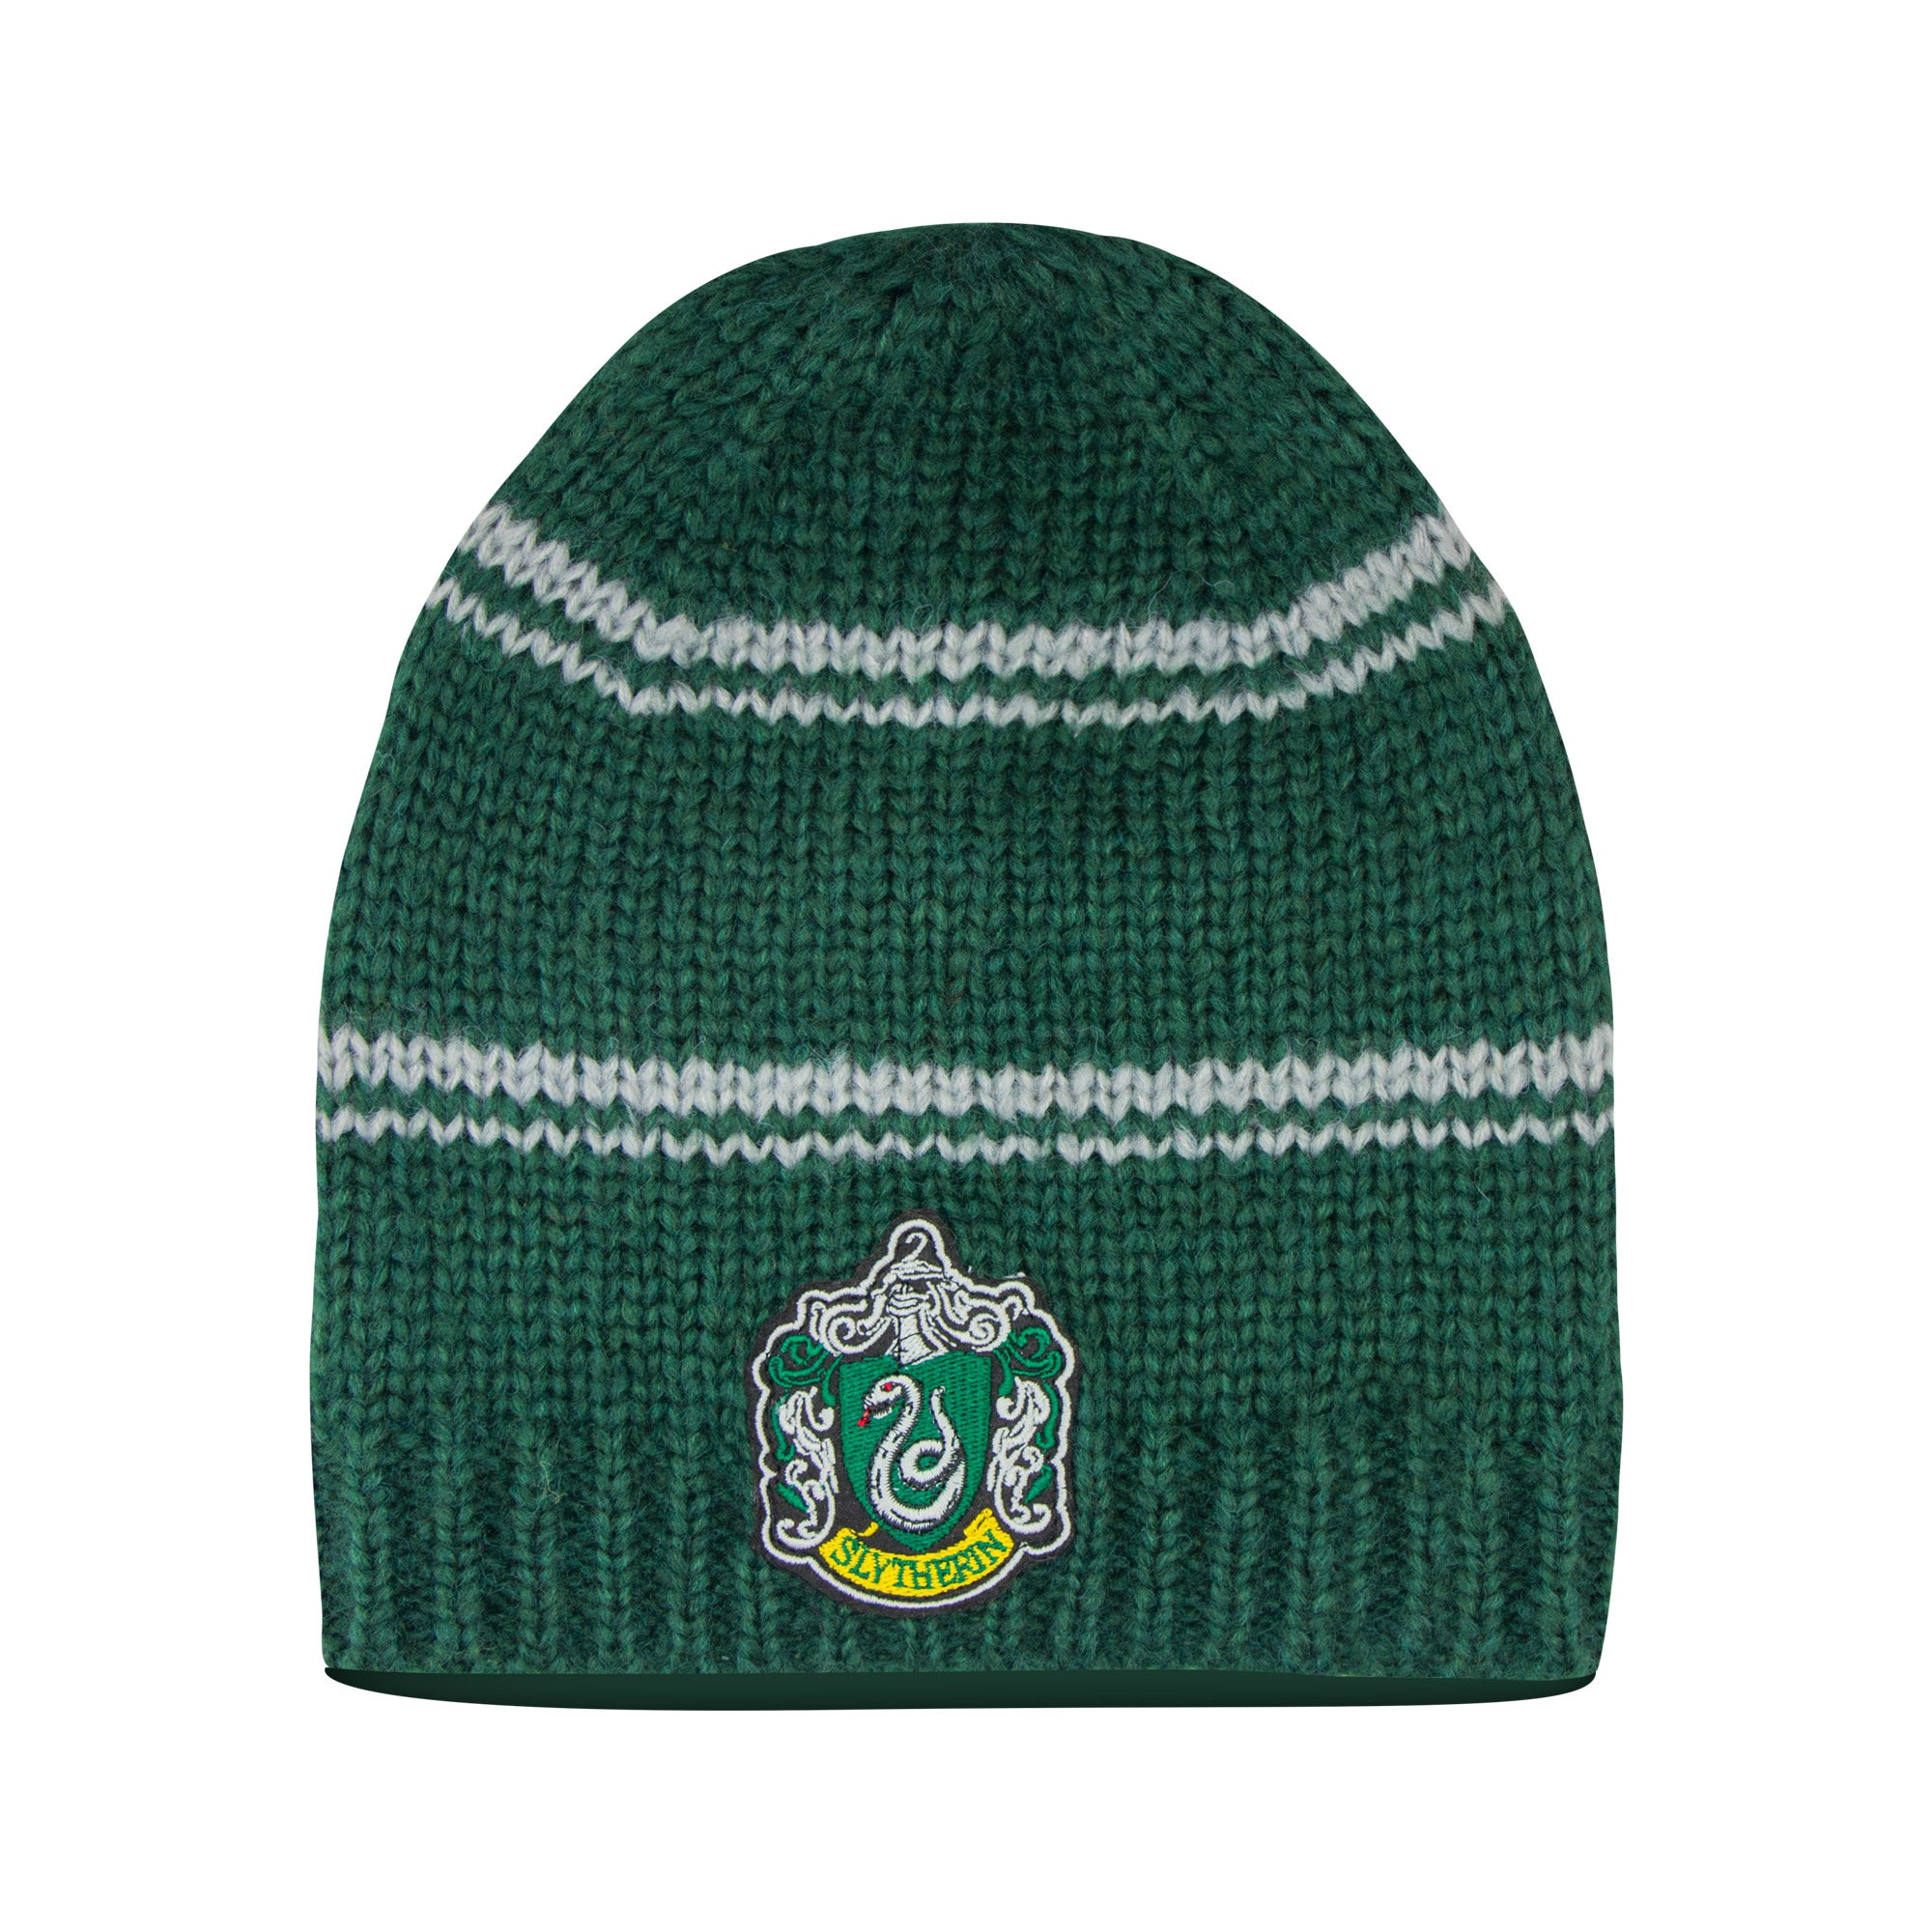 CNR - Gorro Harry Potter Slytherin